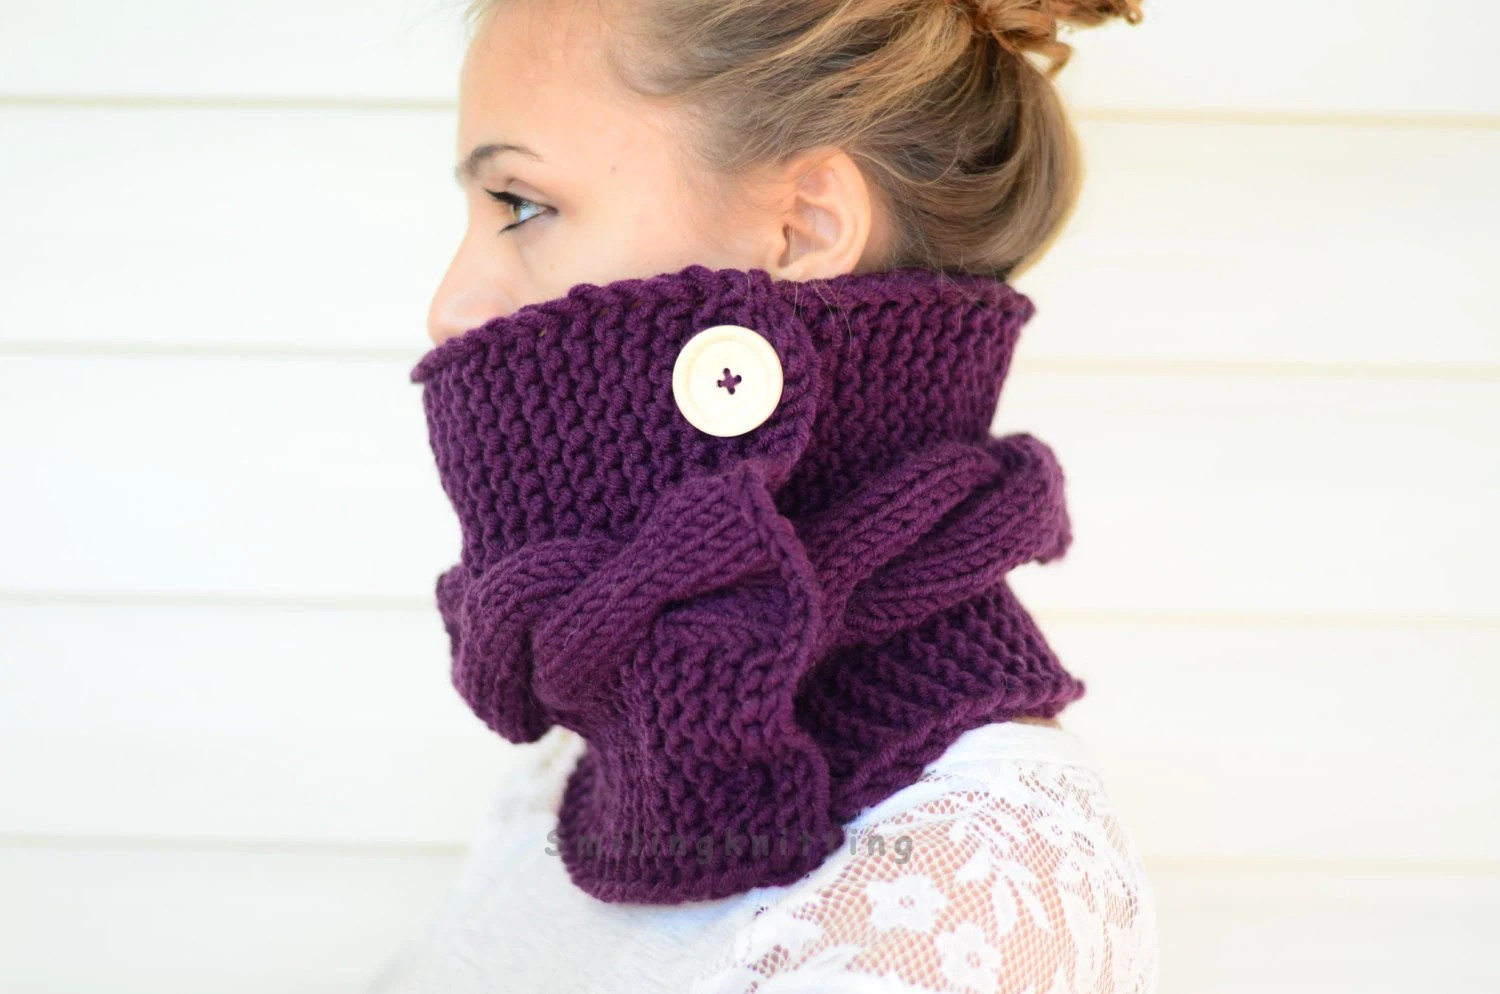 Plum Knit Cowl, Hand Knit Cowl, Purple Scarf, Knit Scarf, Chunky Cowl, Christmas Gift, Neck Warmer, Wood Button, Gift For Her, Gift Under 30 - SmilingKnitting